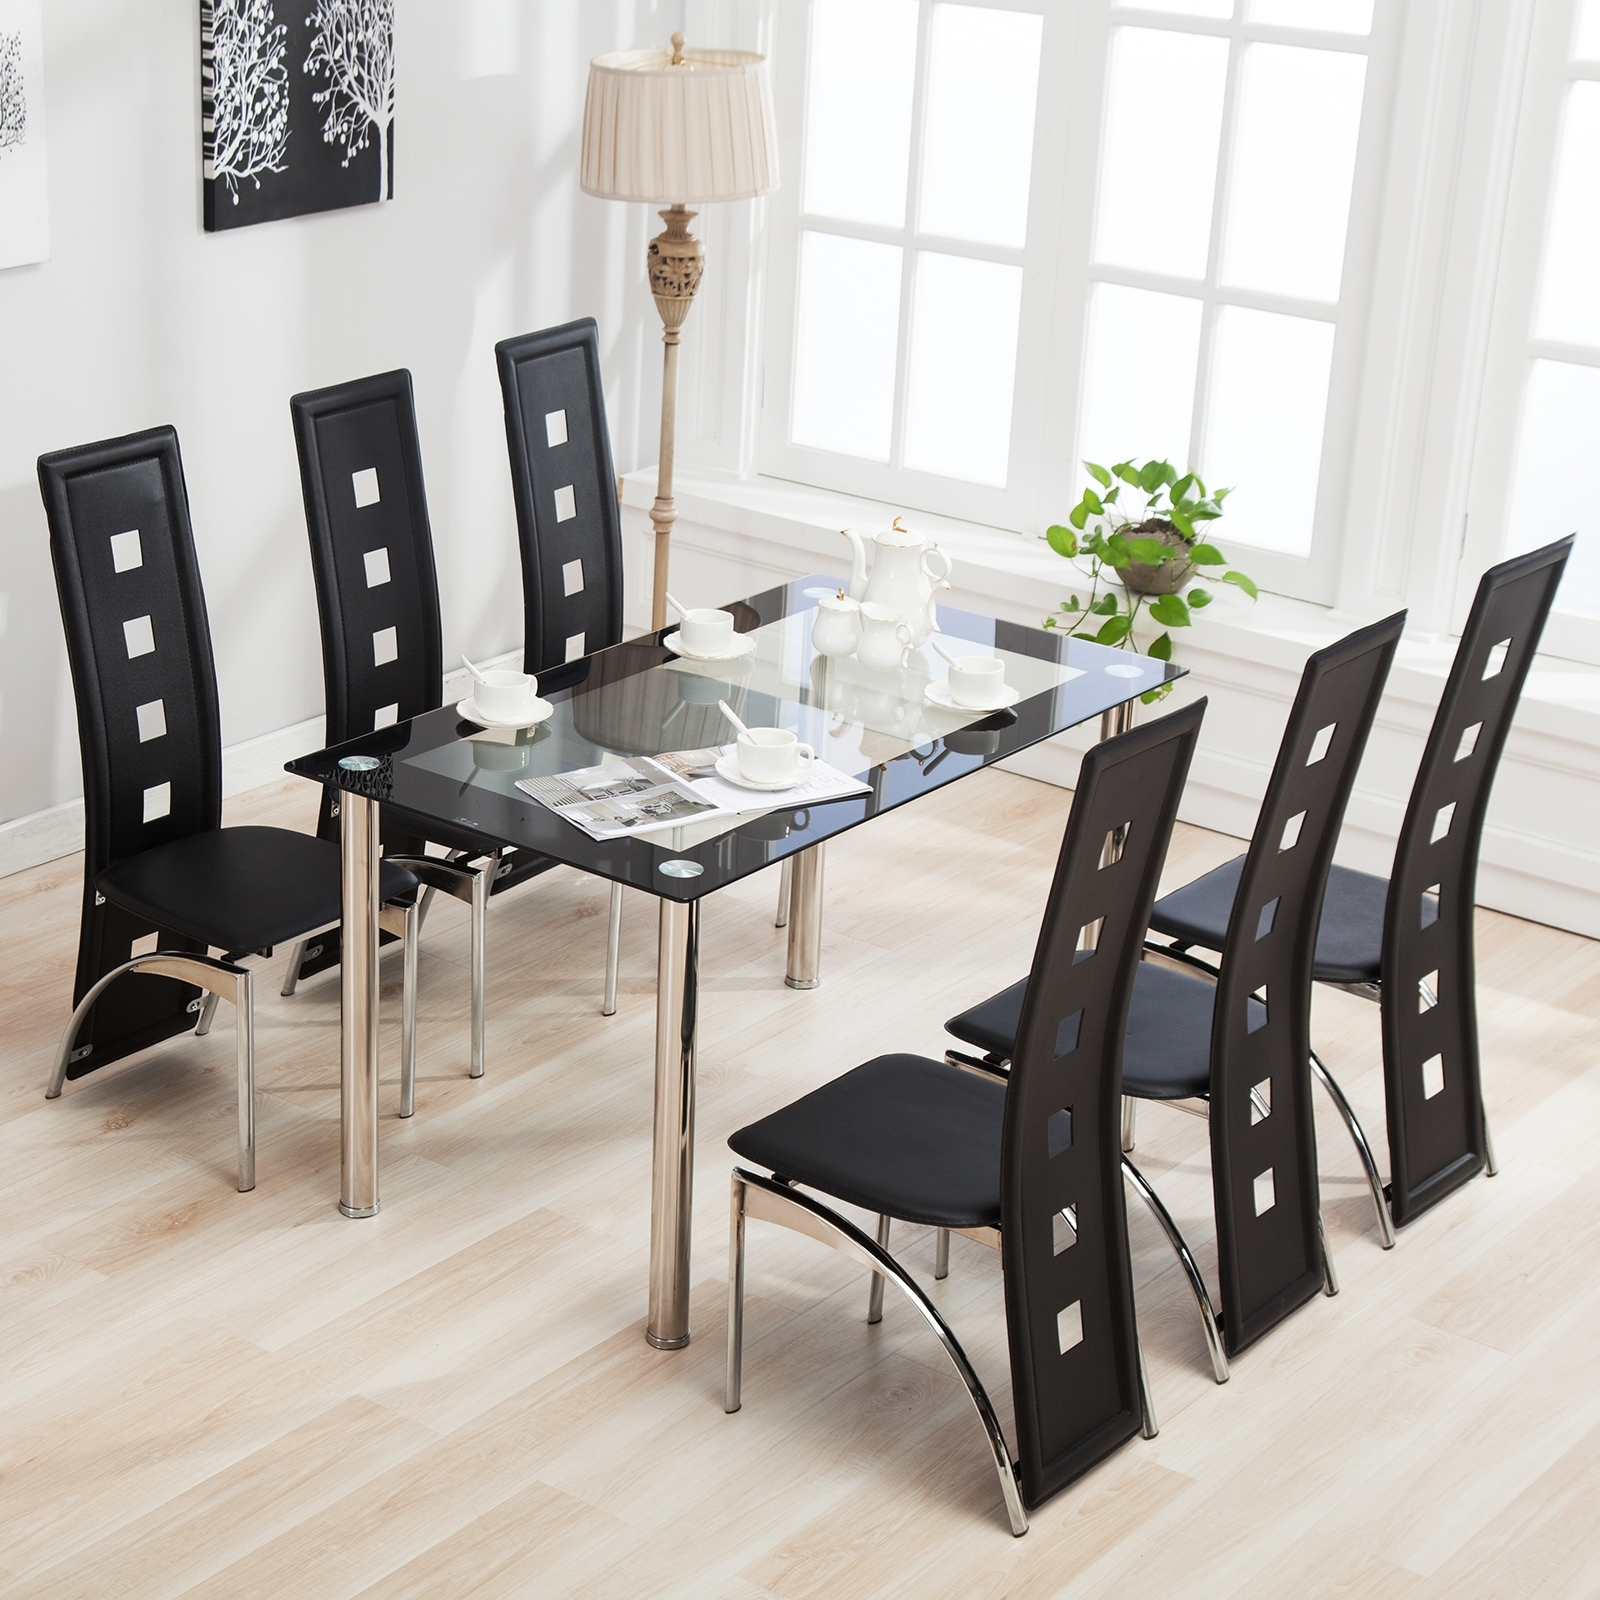 Popular Dining Room Glass Tables Sets Throughout Mecor 7Pcs Dining Table Set 6 Chairs Glass Metal Kitchen Room (Gallery 17 of 25)